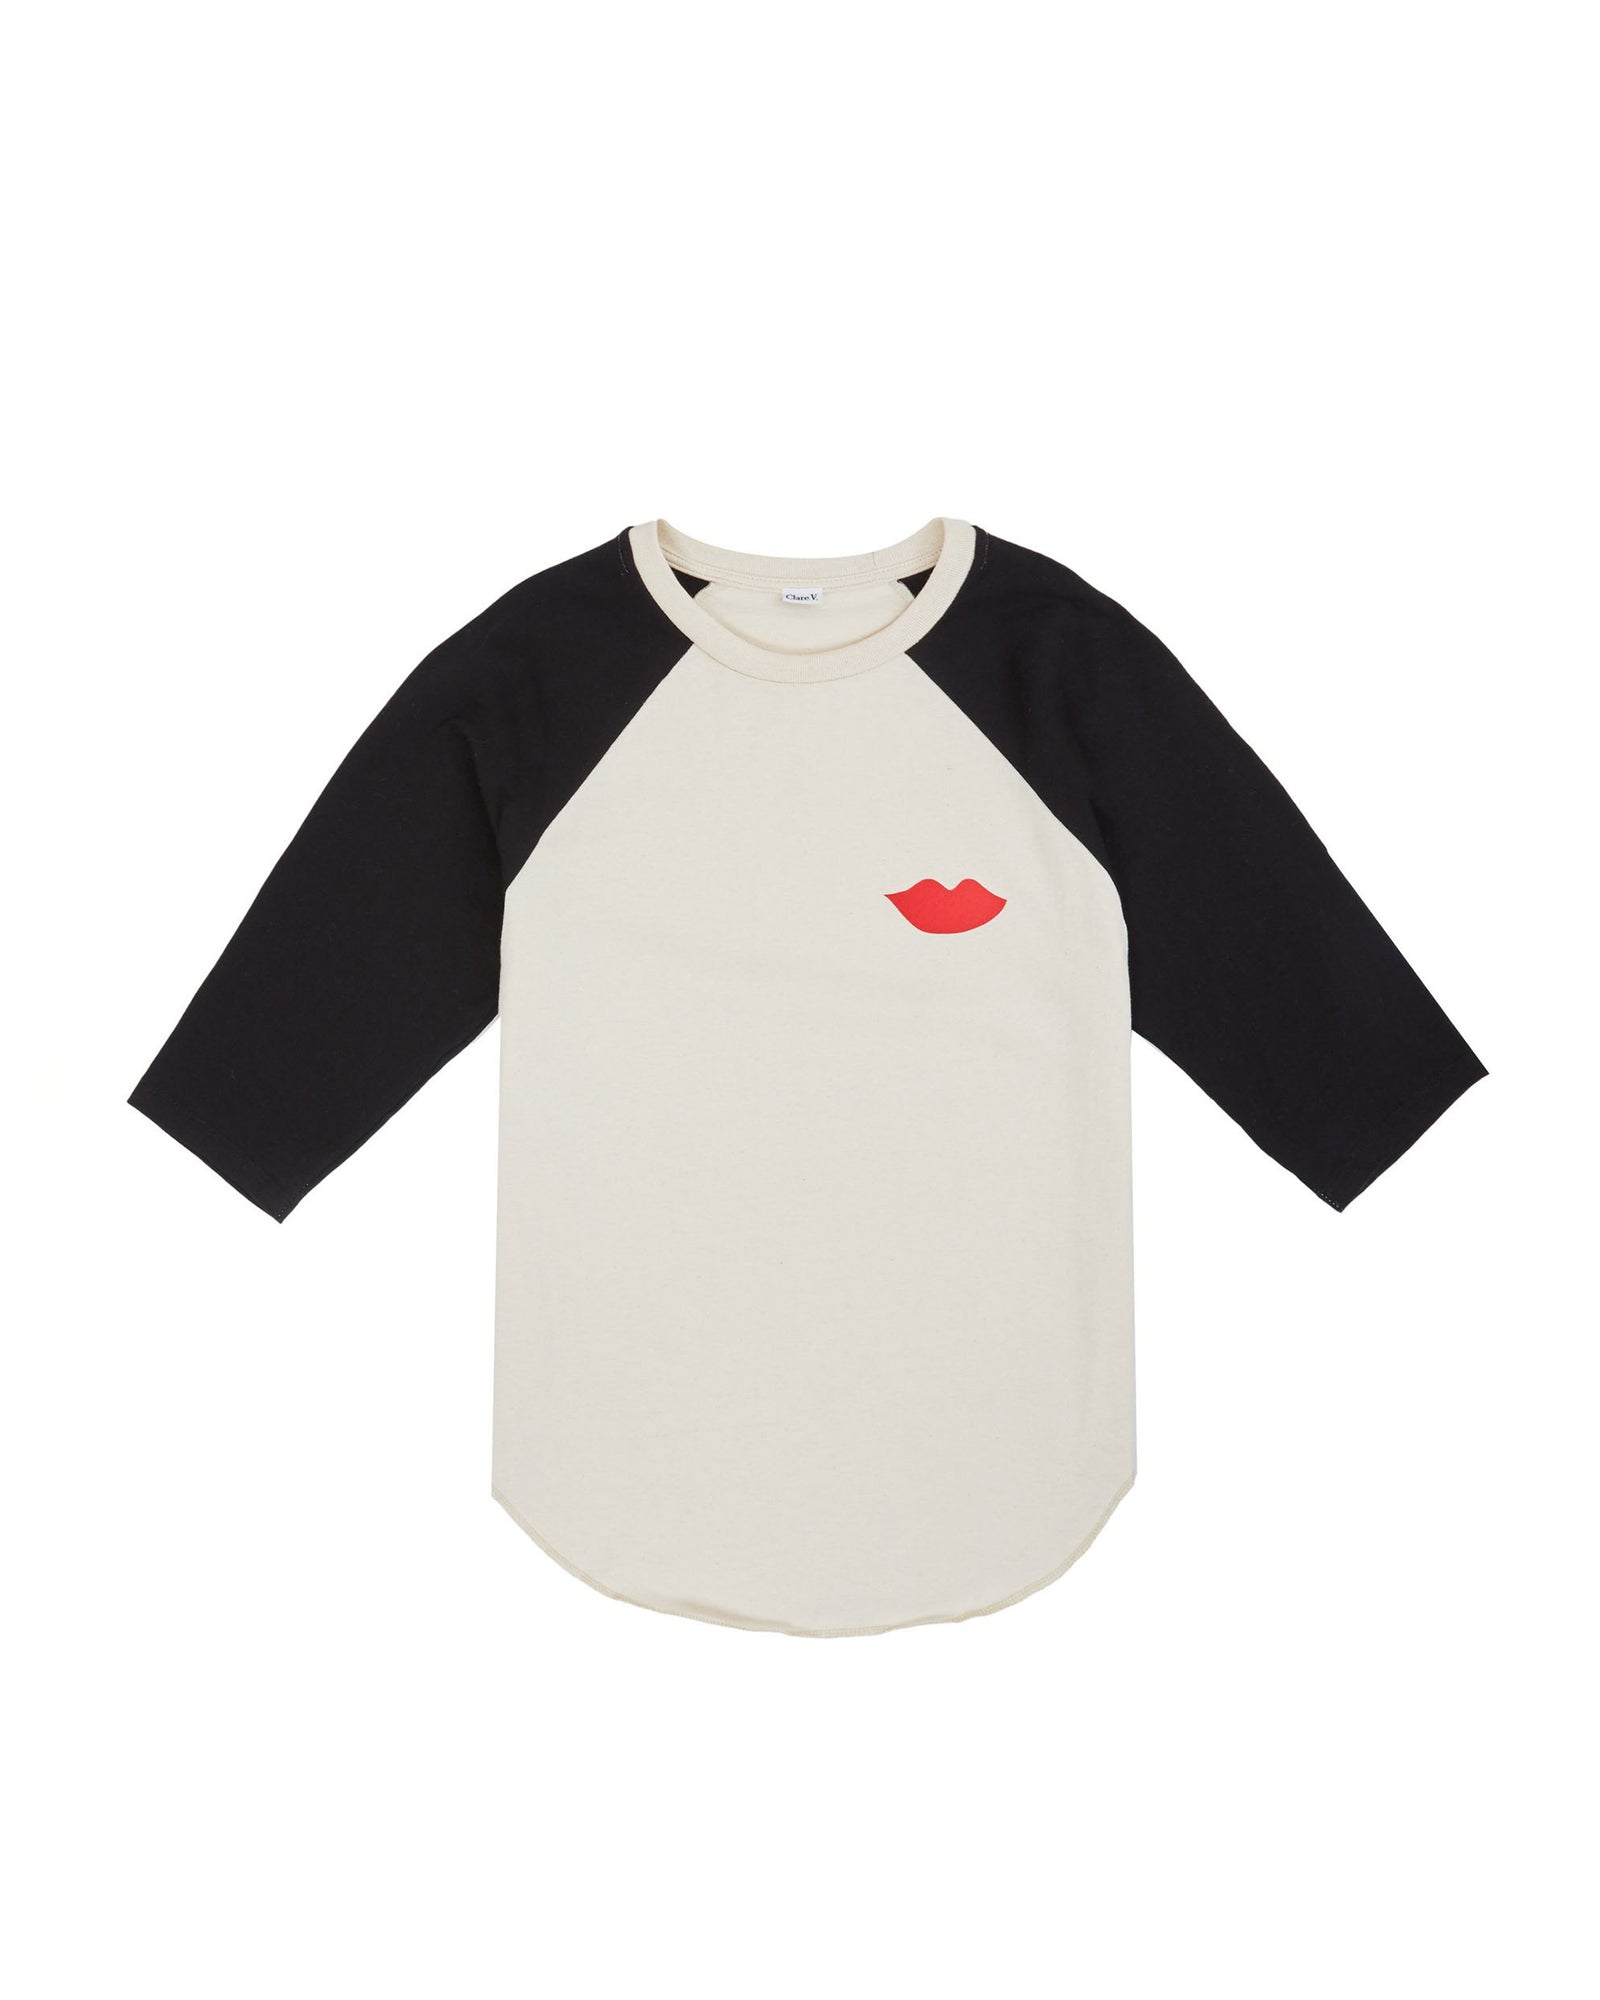 3/4 Sleeve Cream with Black Sleeves and Poppy Lips Raglan Tee